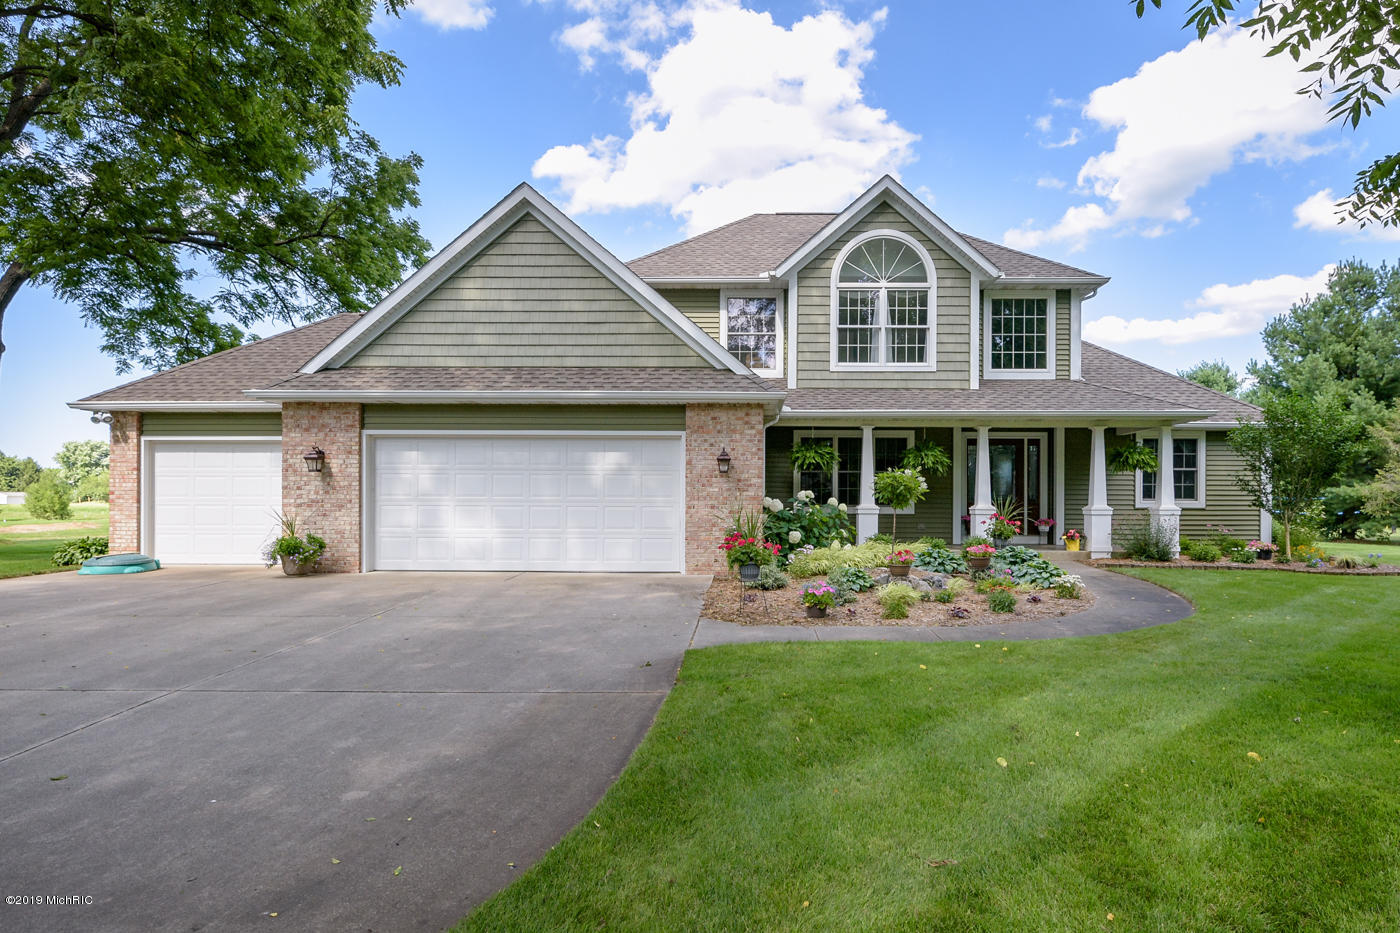 Photo for 15985 Prairie Ronde Road, Schoolcraft, MI 49087 (MLS # 19033418)